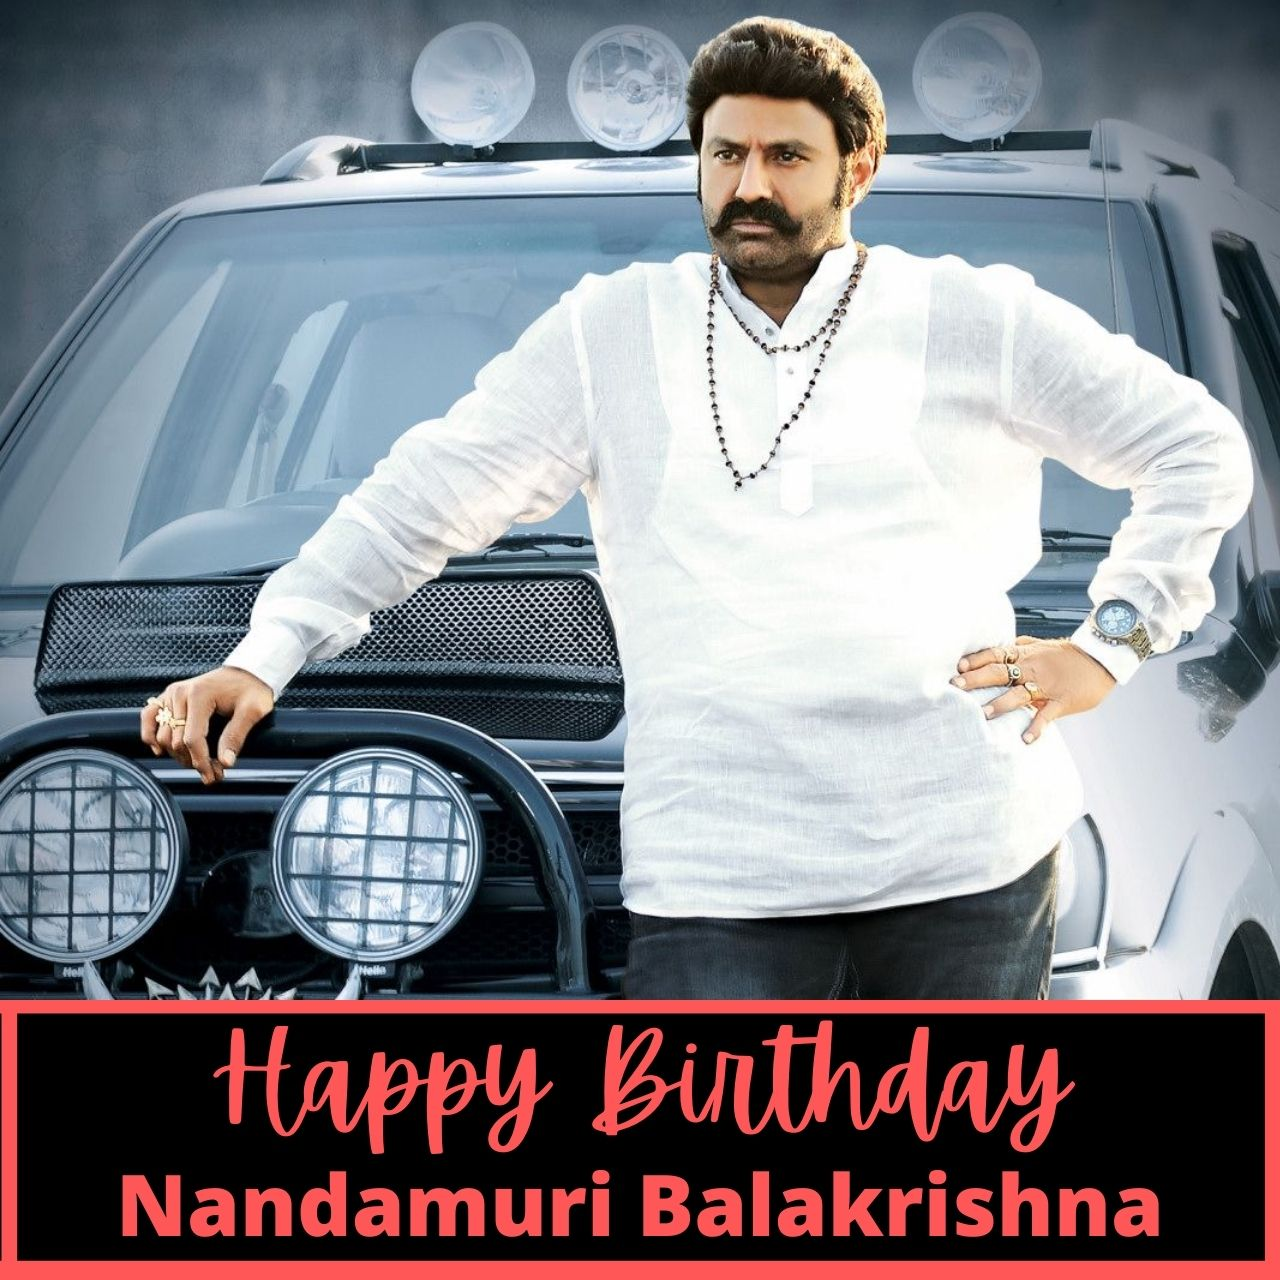 Images (photos), Wishes, Messages, and WhatsApp Status Song Video Download to greet Balayya or NBK – Socially Keeda